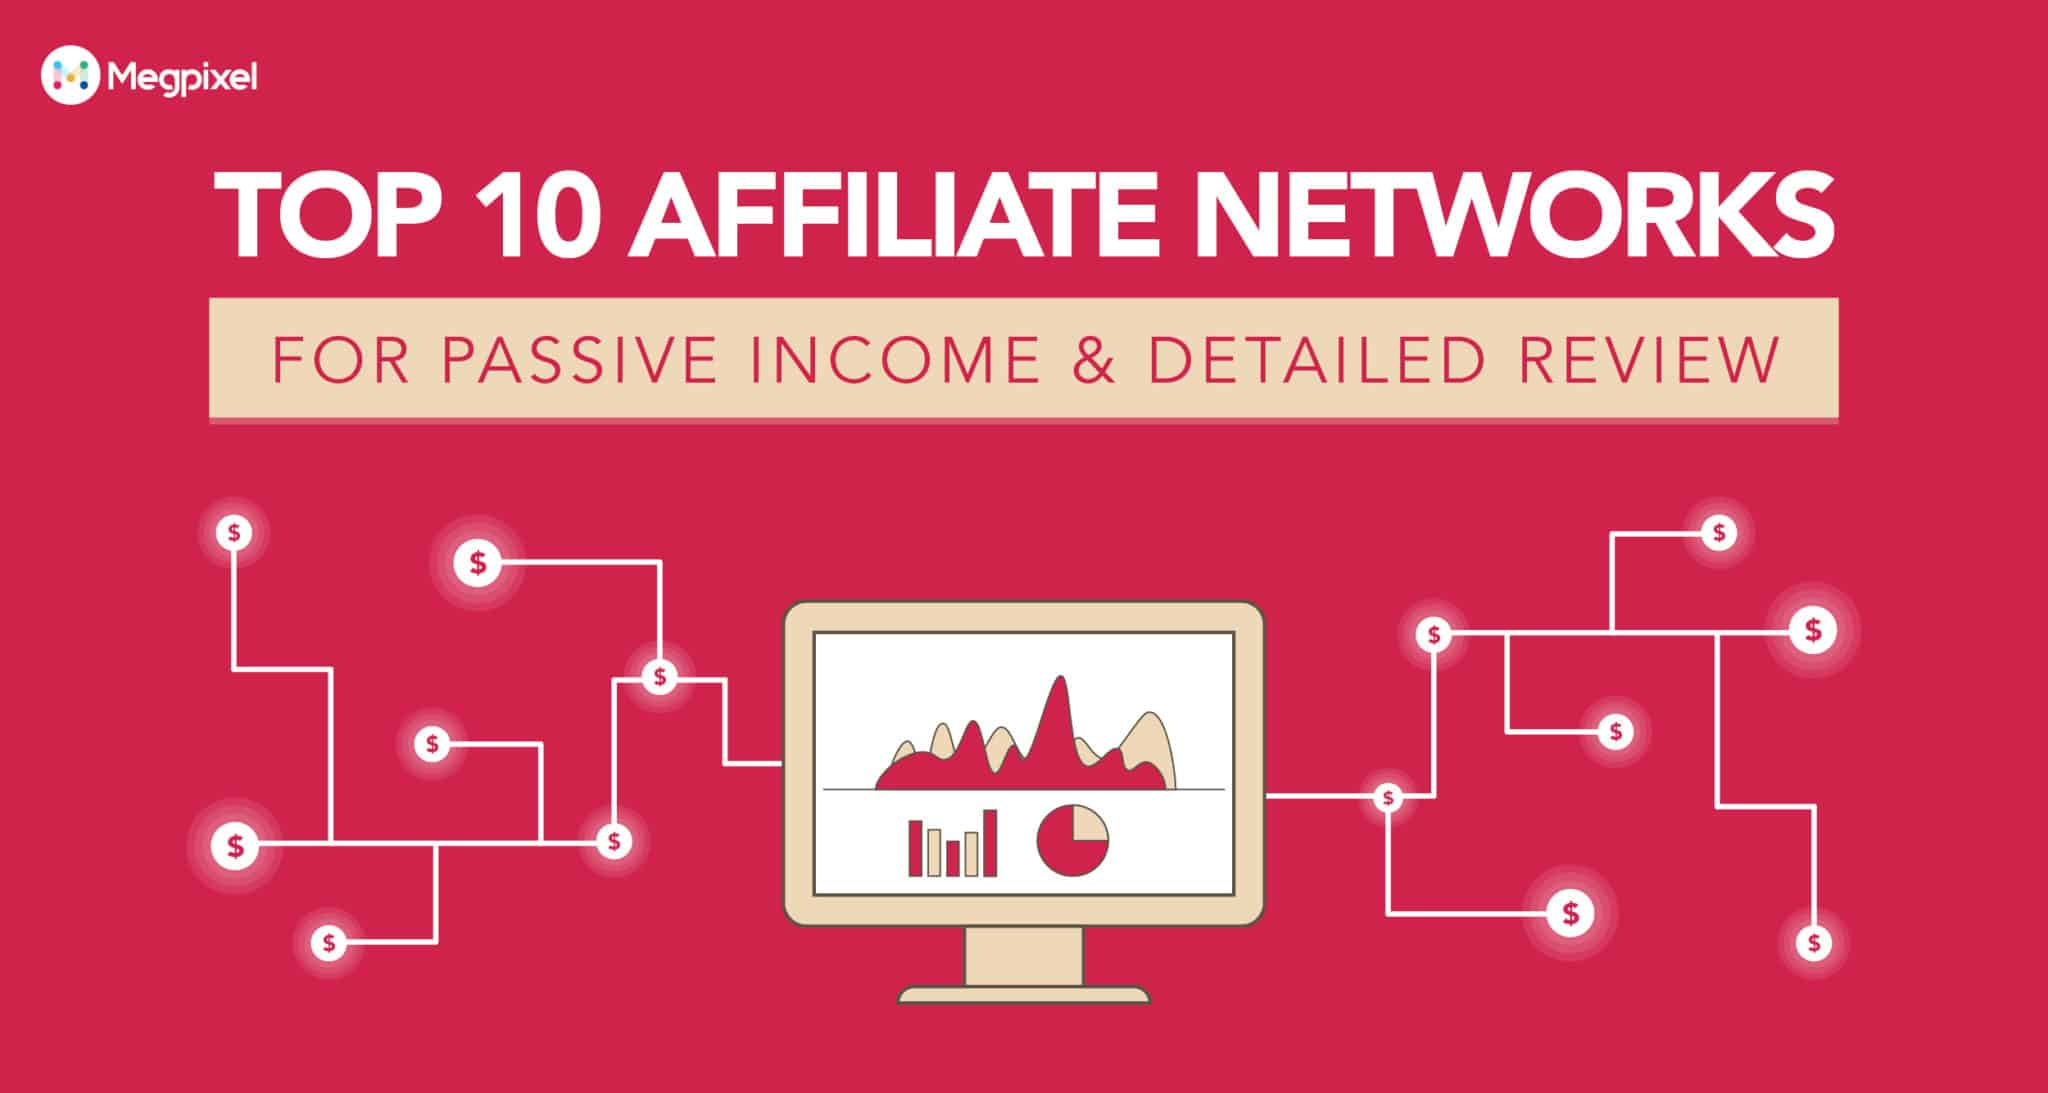 10+ Best Affiliate Networks for Passive Income in 2019 [Detailed Article]